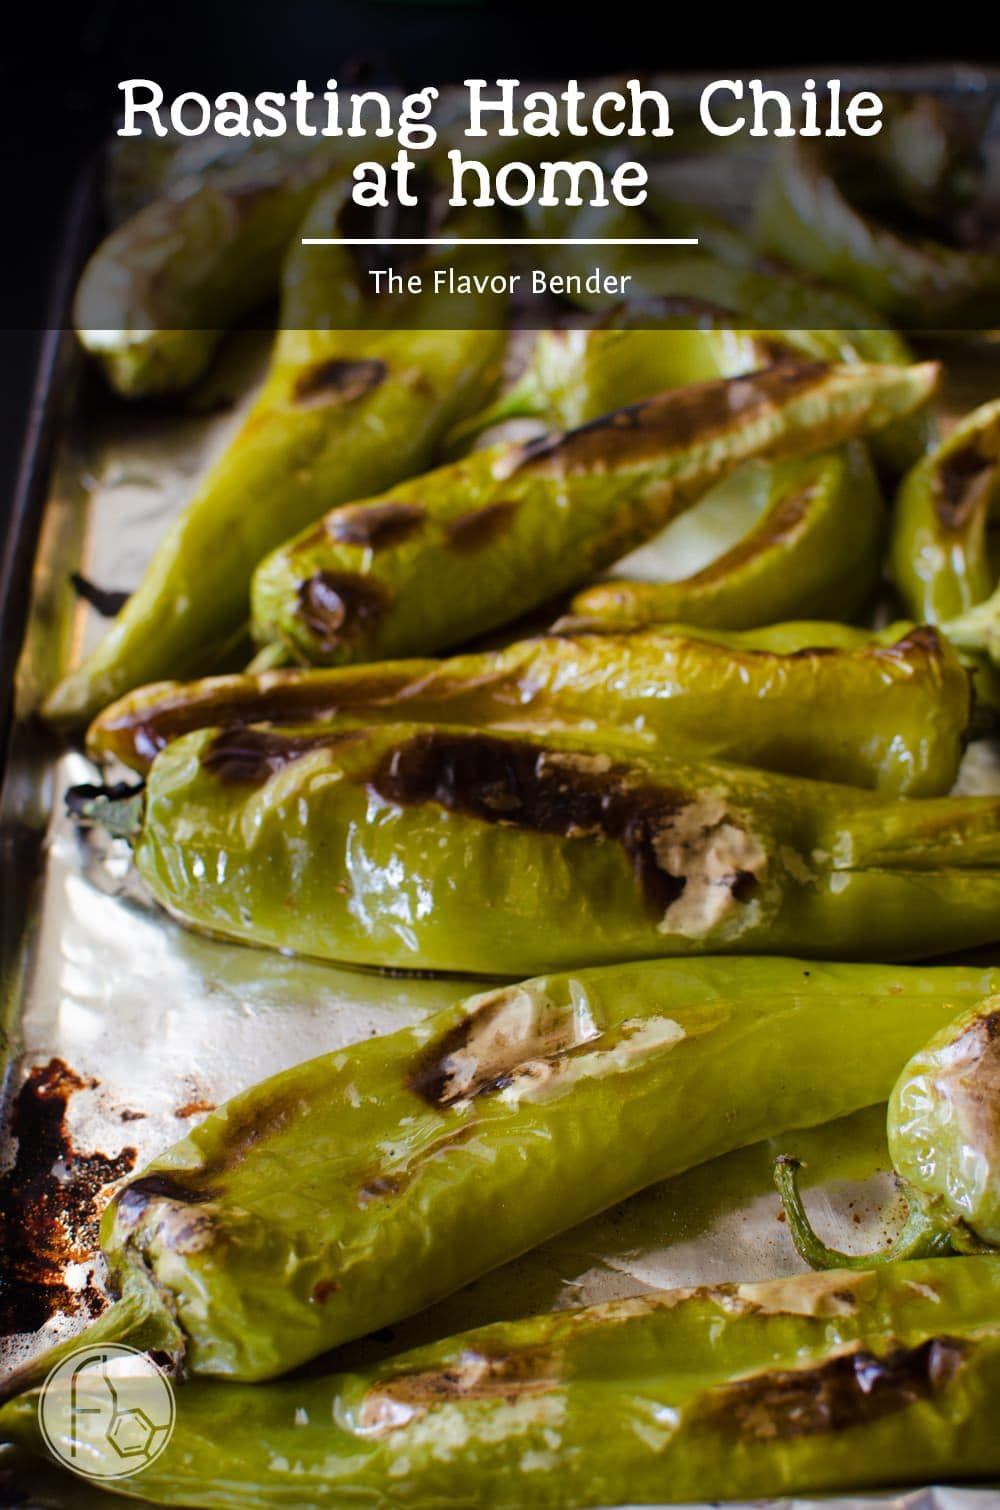 How to Roast Hatch Chile in the Oven